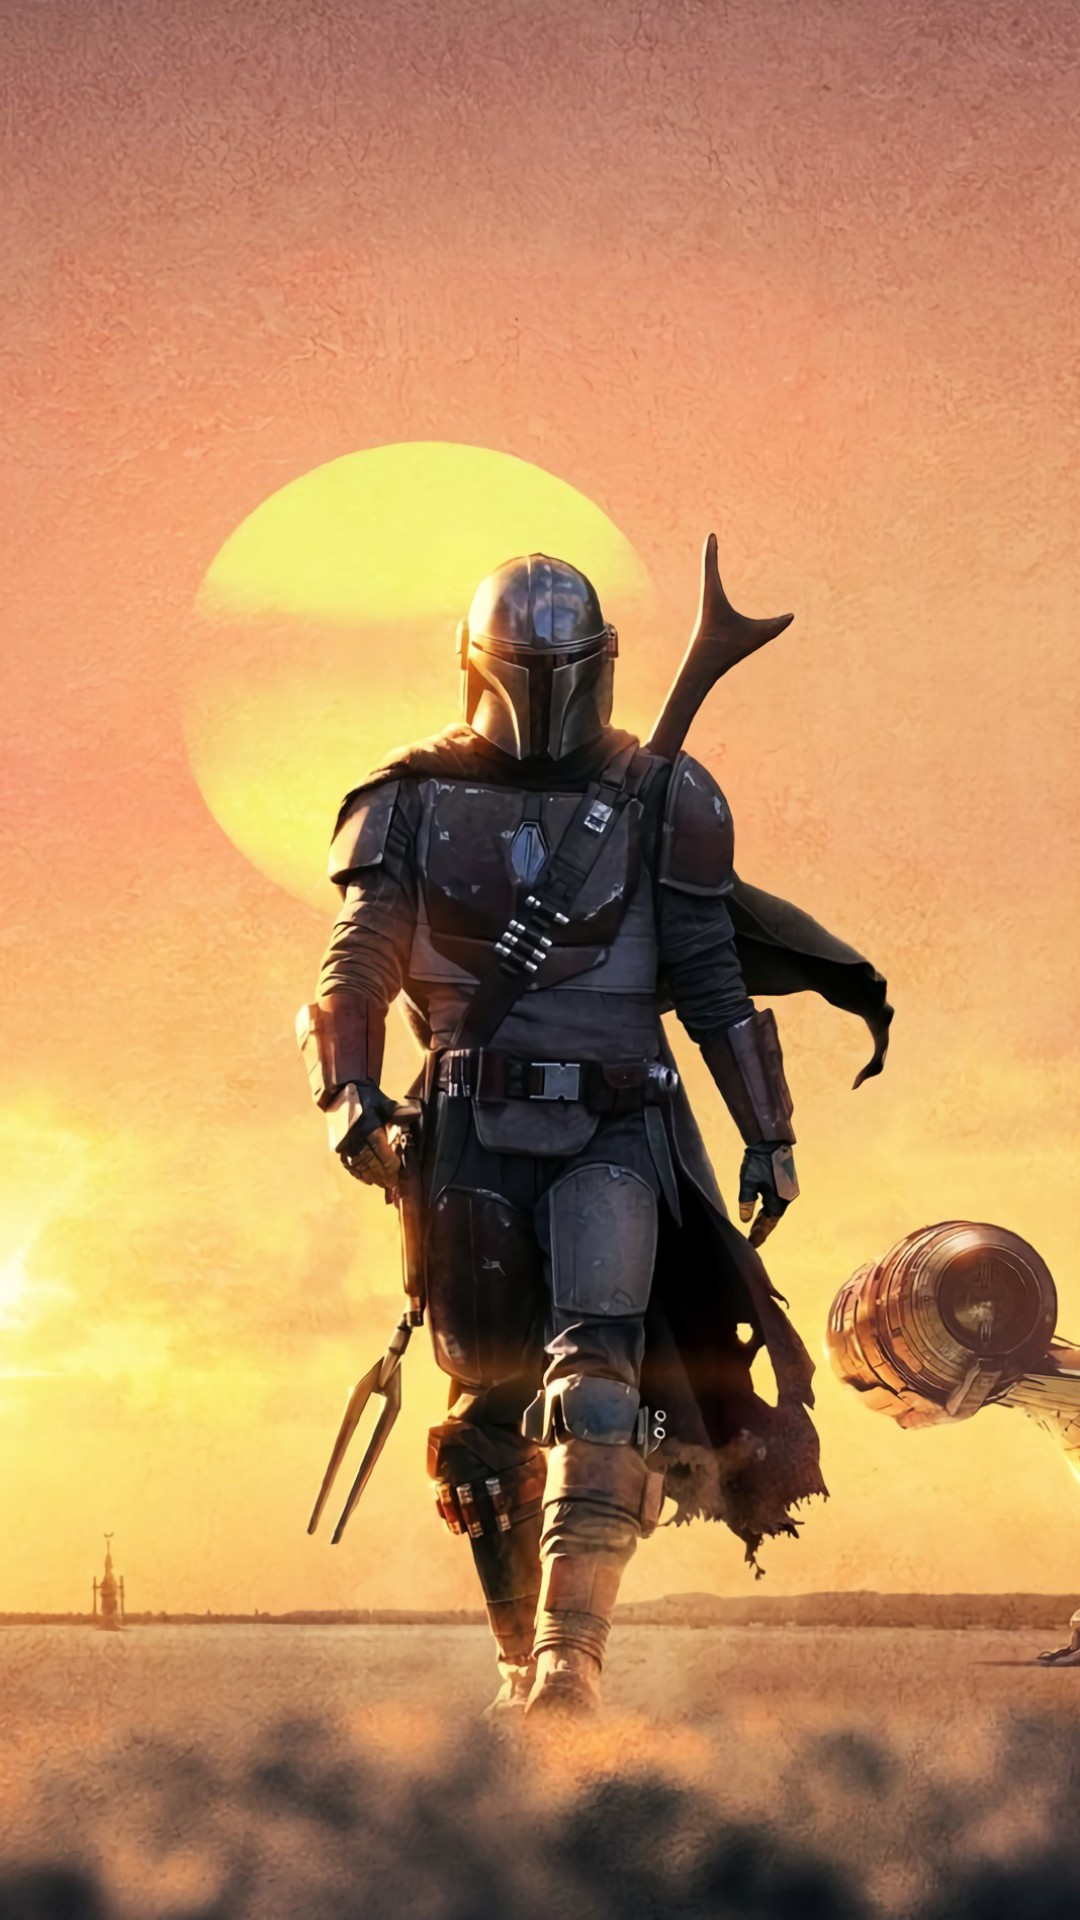 Mandalorian Iphone Wallpaper - KoLPaPer - Awesome Free HD ...